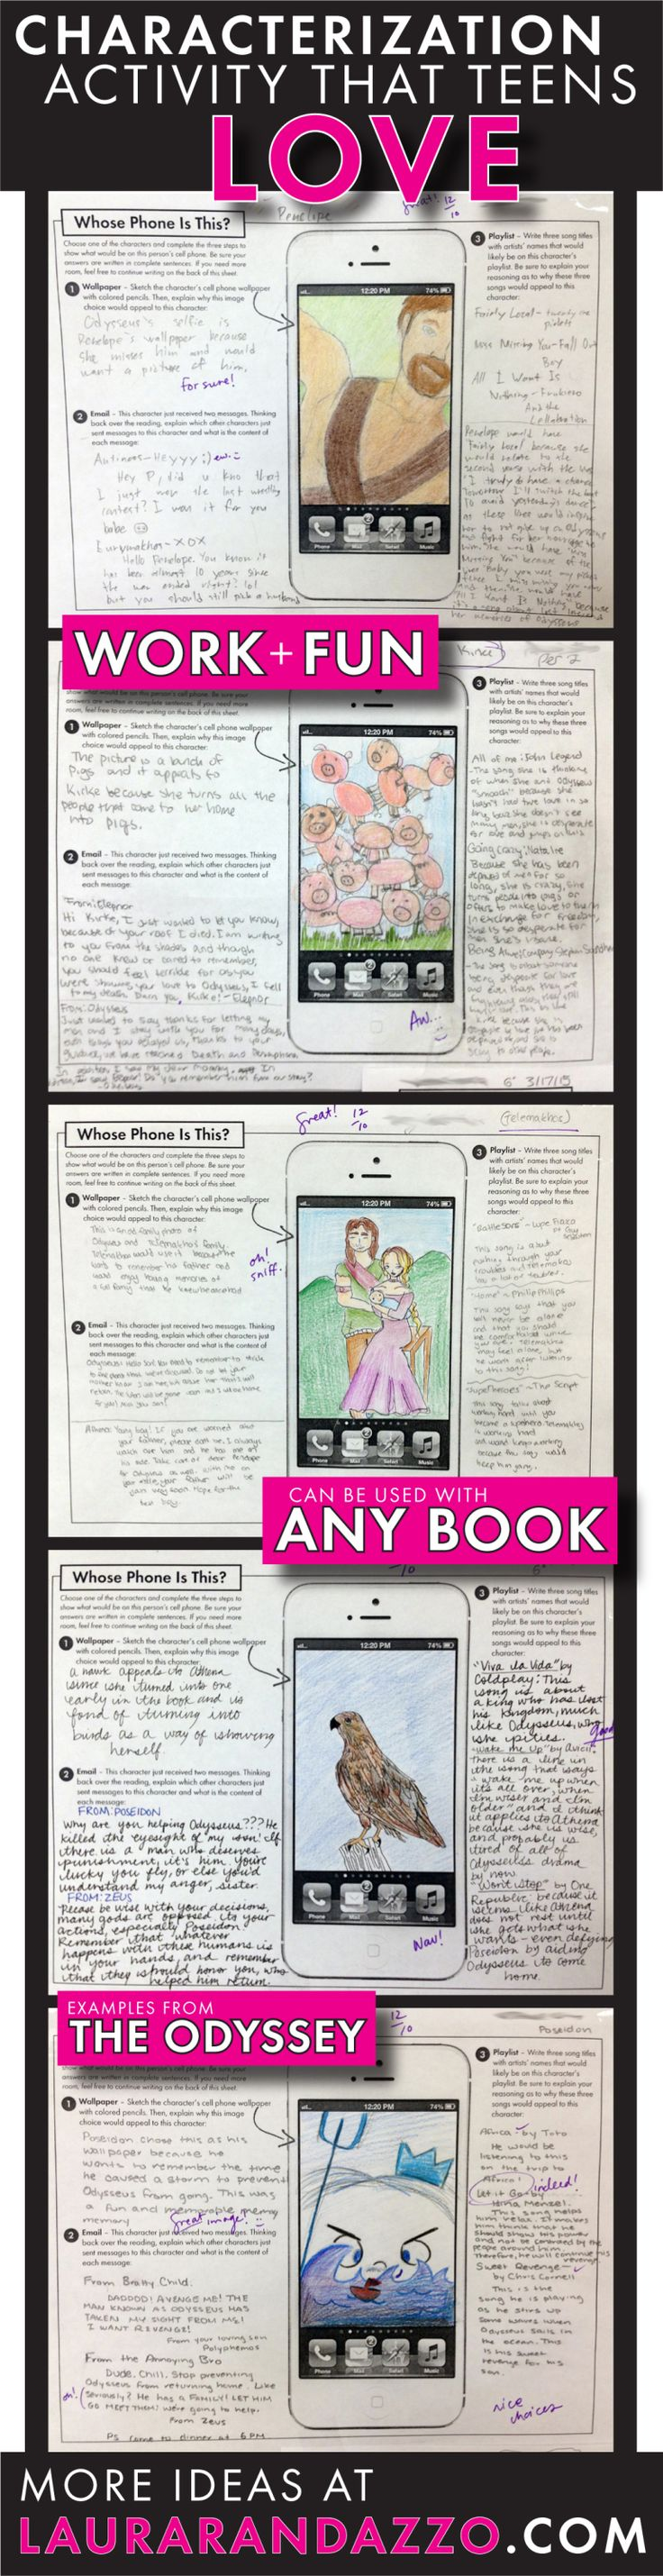 Modern Tech + Classic Lit. | Laura Randazzo – Solutions for the Secondary Classroom